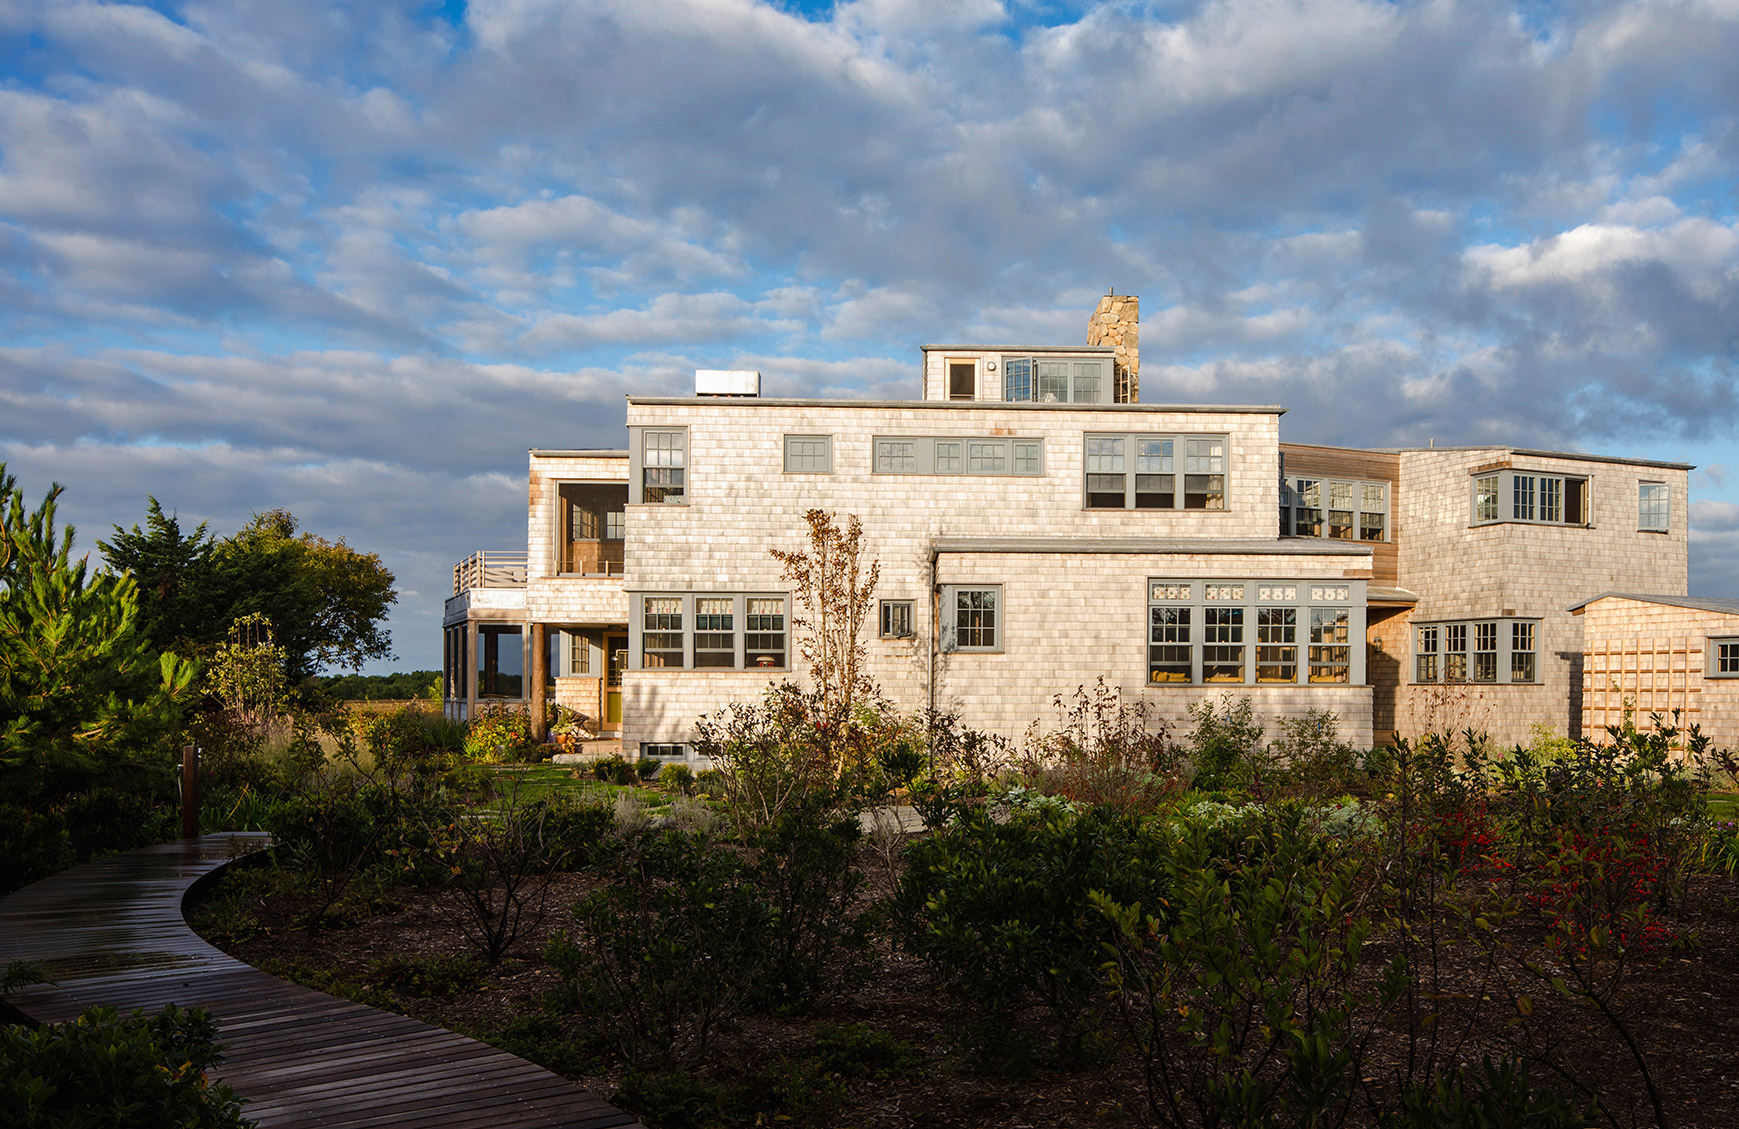 Meadow Beach House, Martha's Vineyard, MA - A modern, high-performance family retreat designed to capture the island views, light, and breezes.